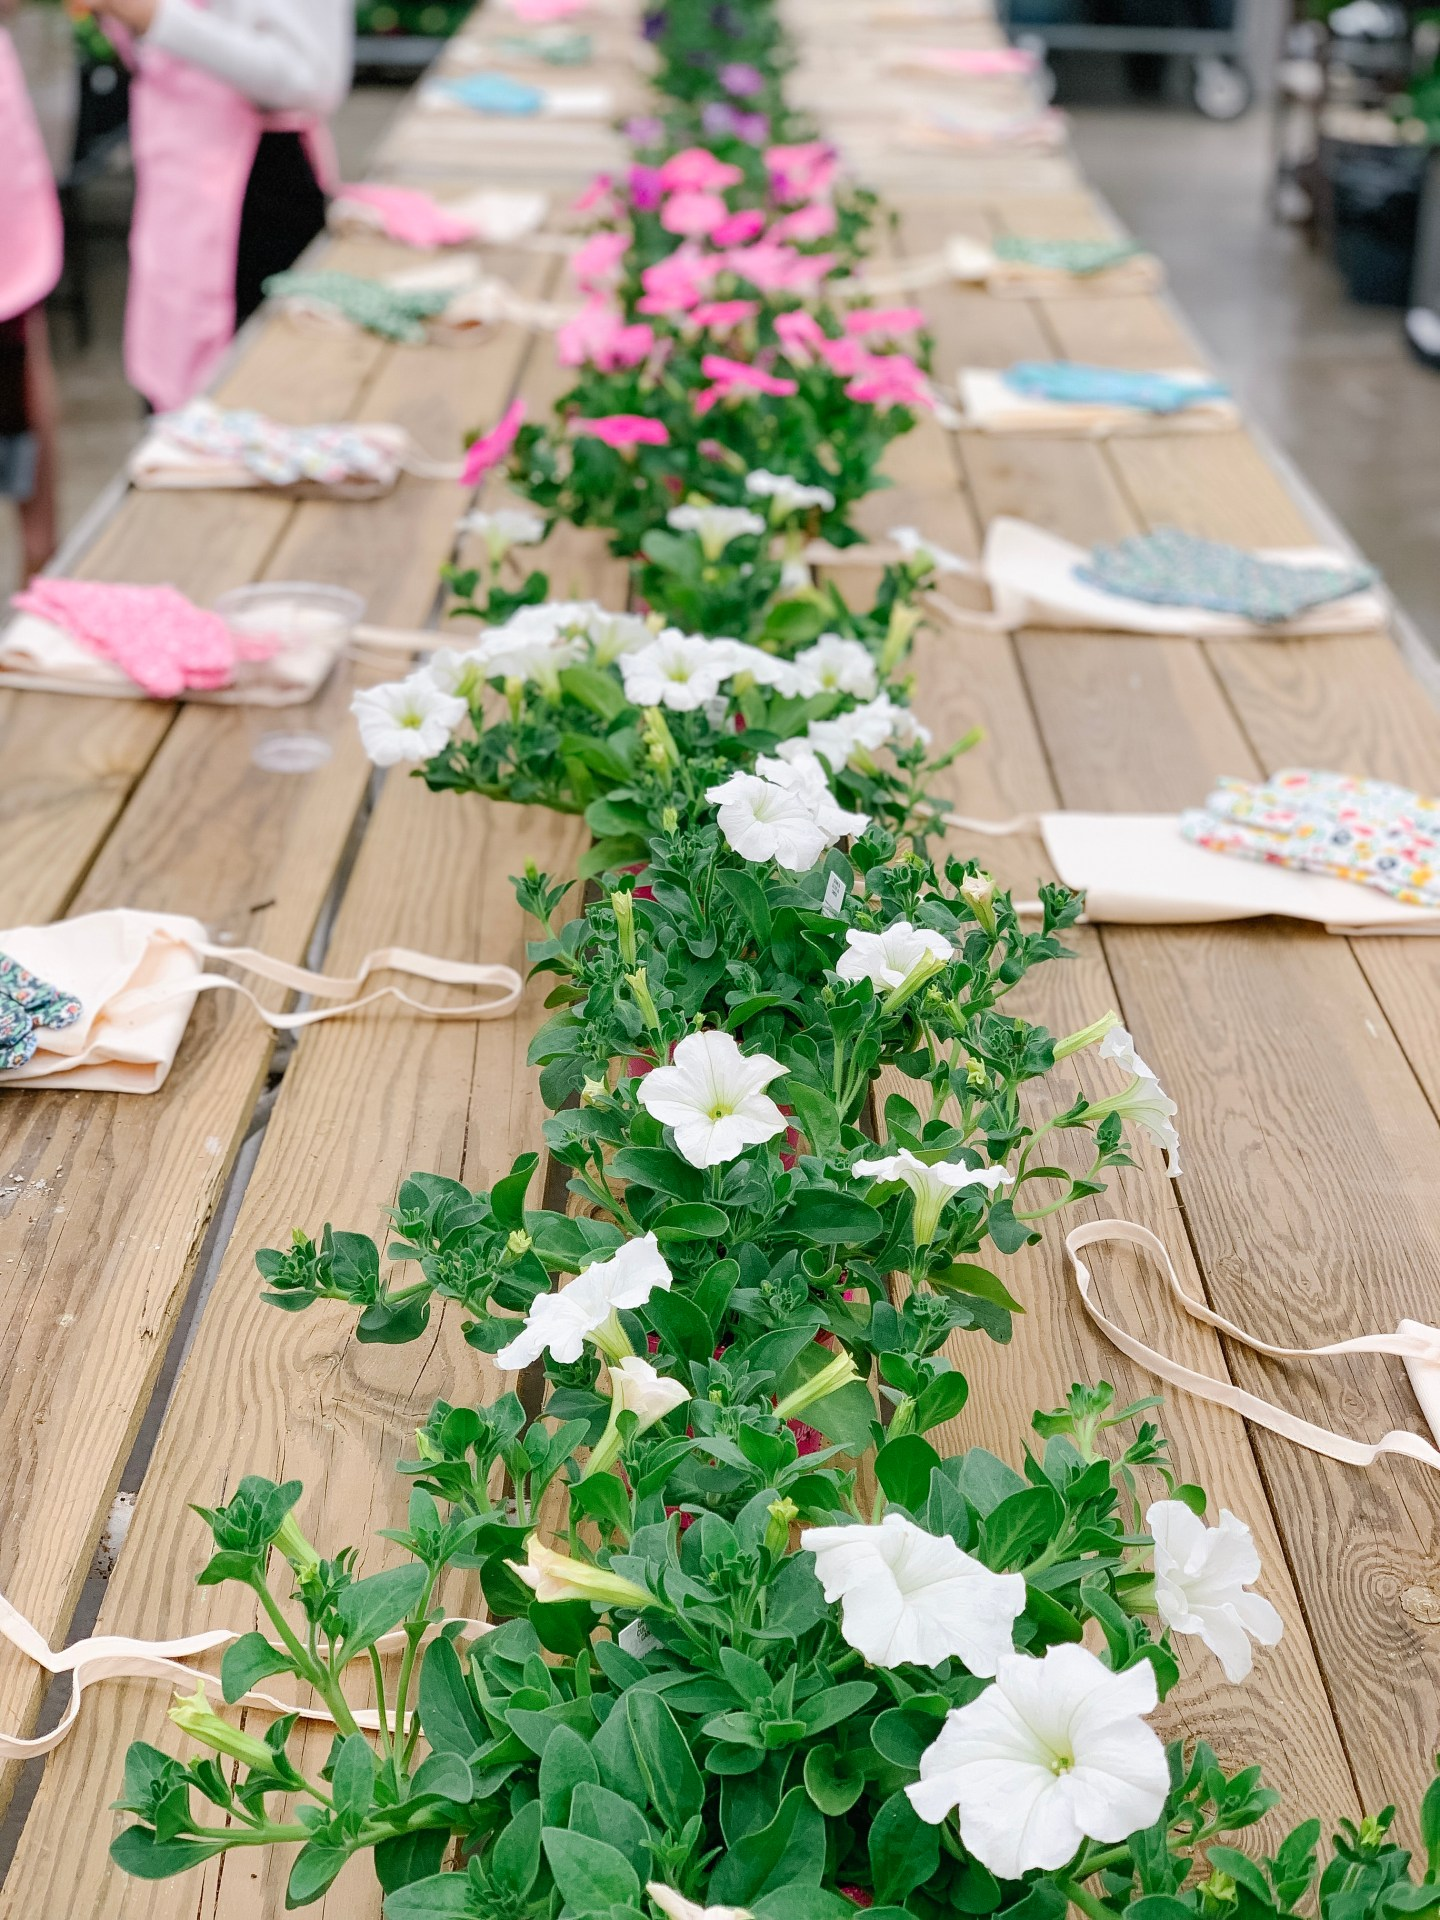 Wave Petunias: A Potting Party